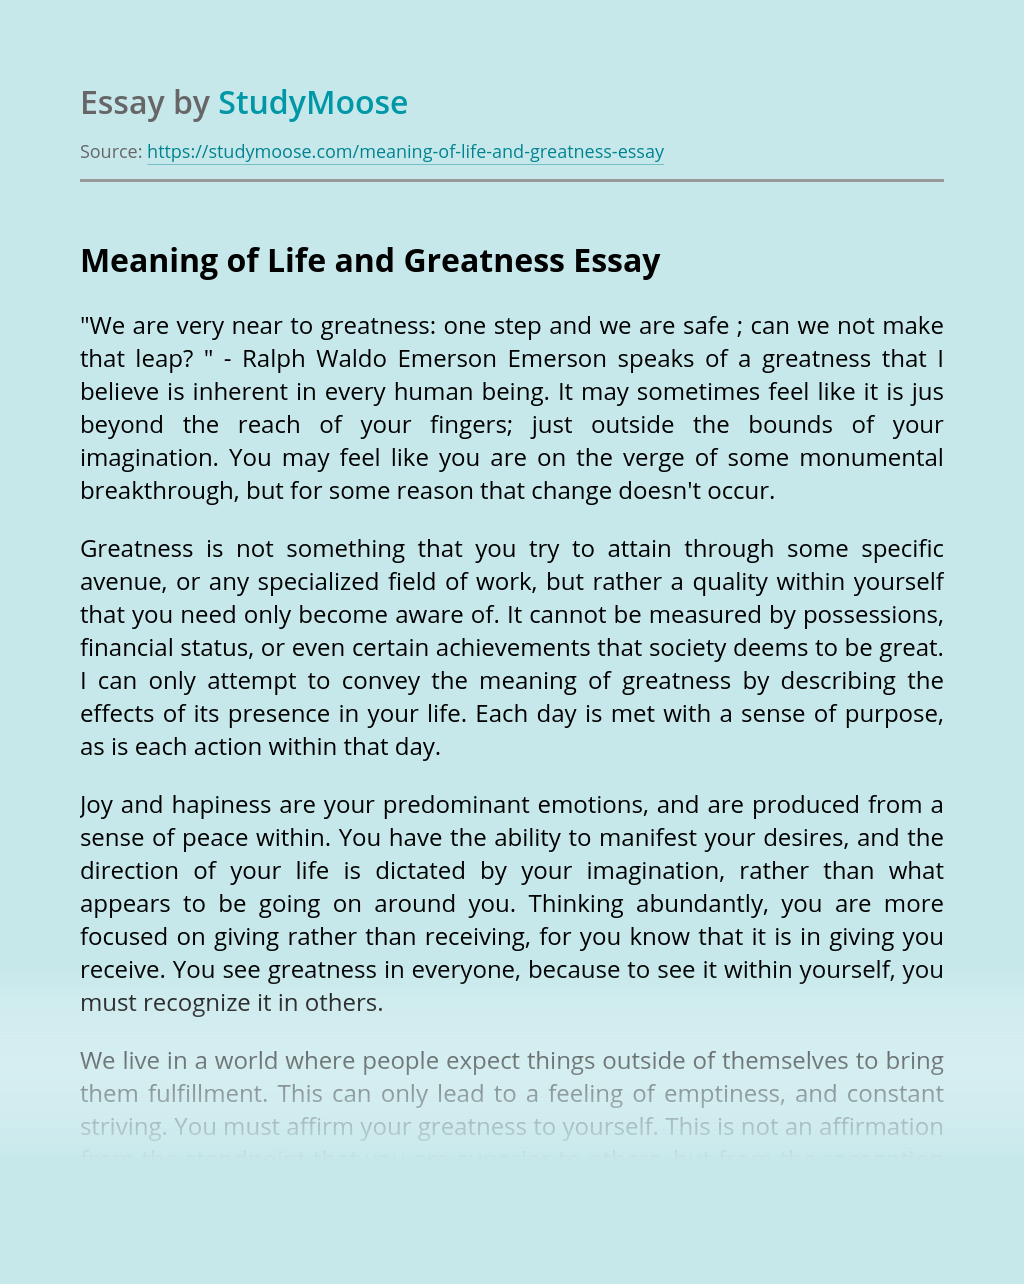 Meaning of Life and Greatness